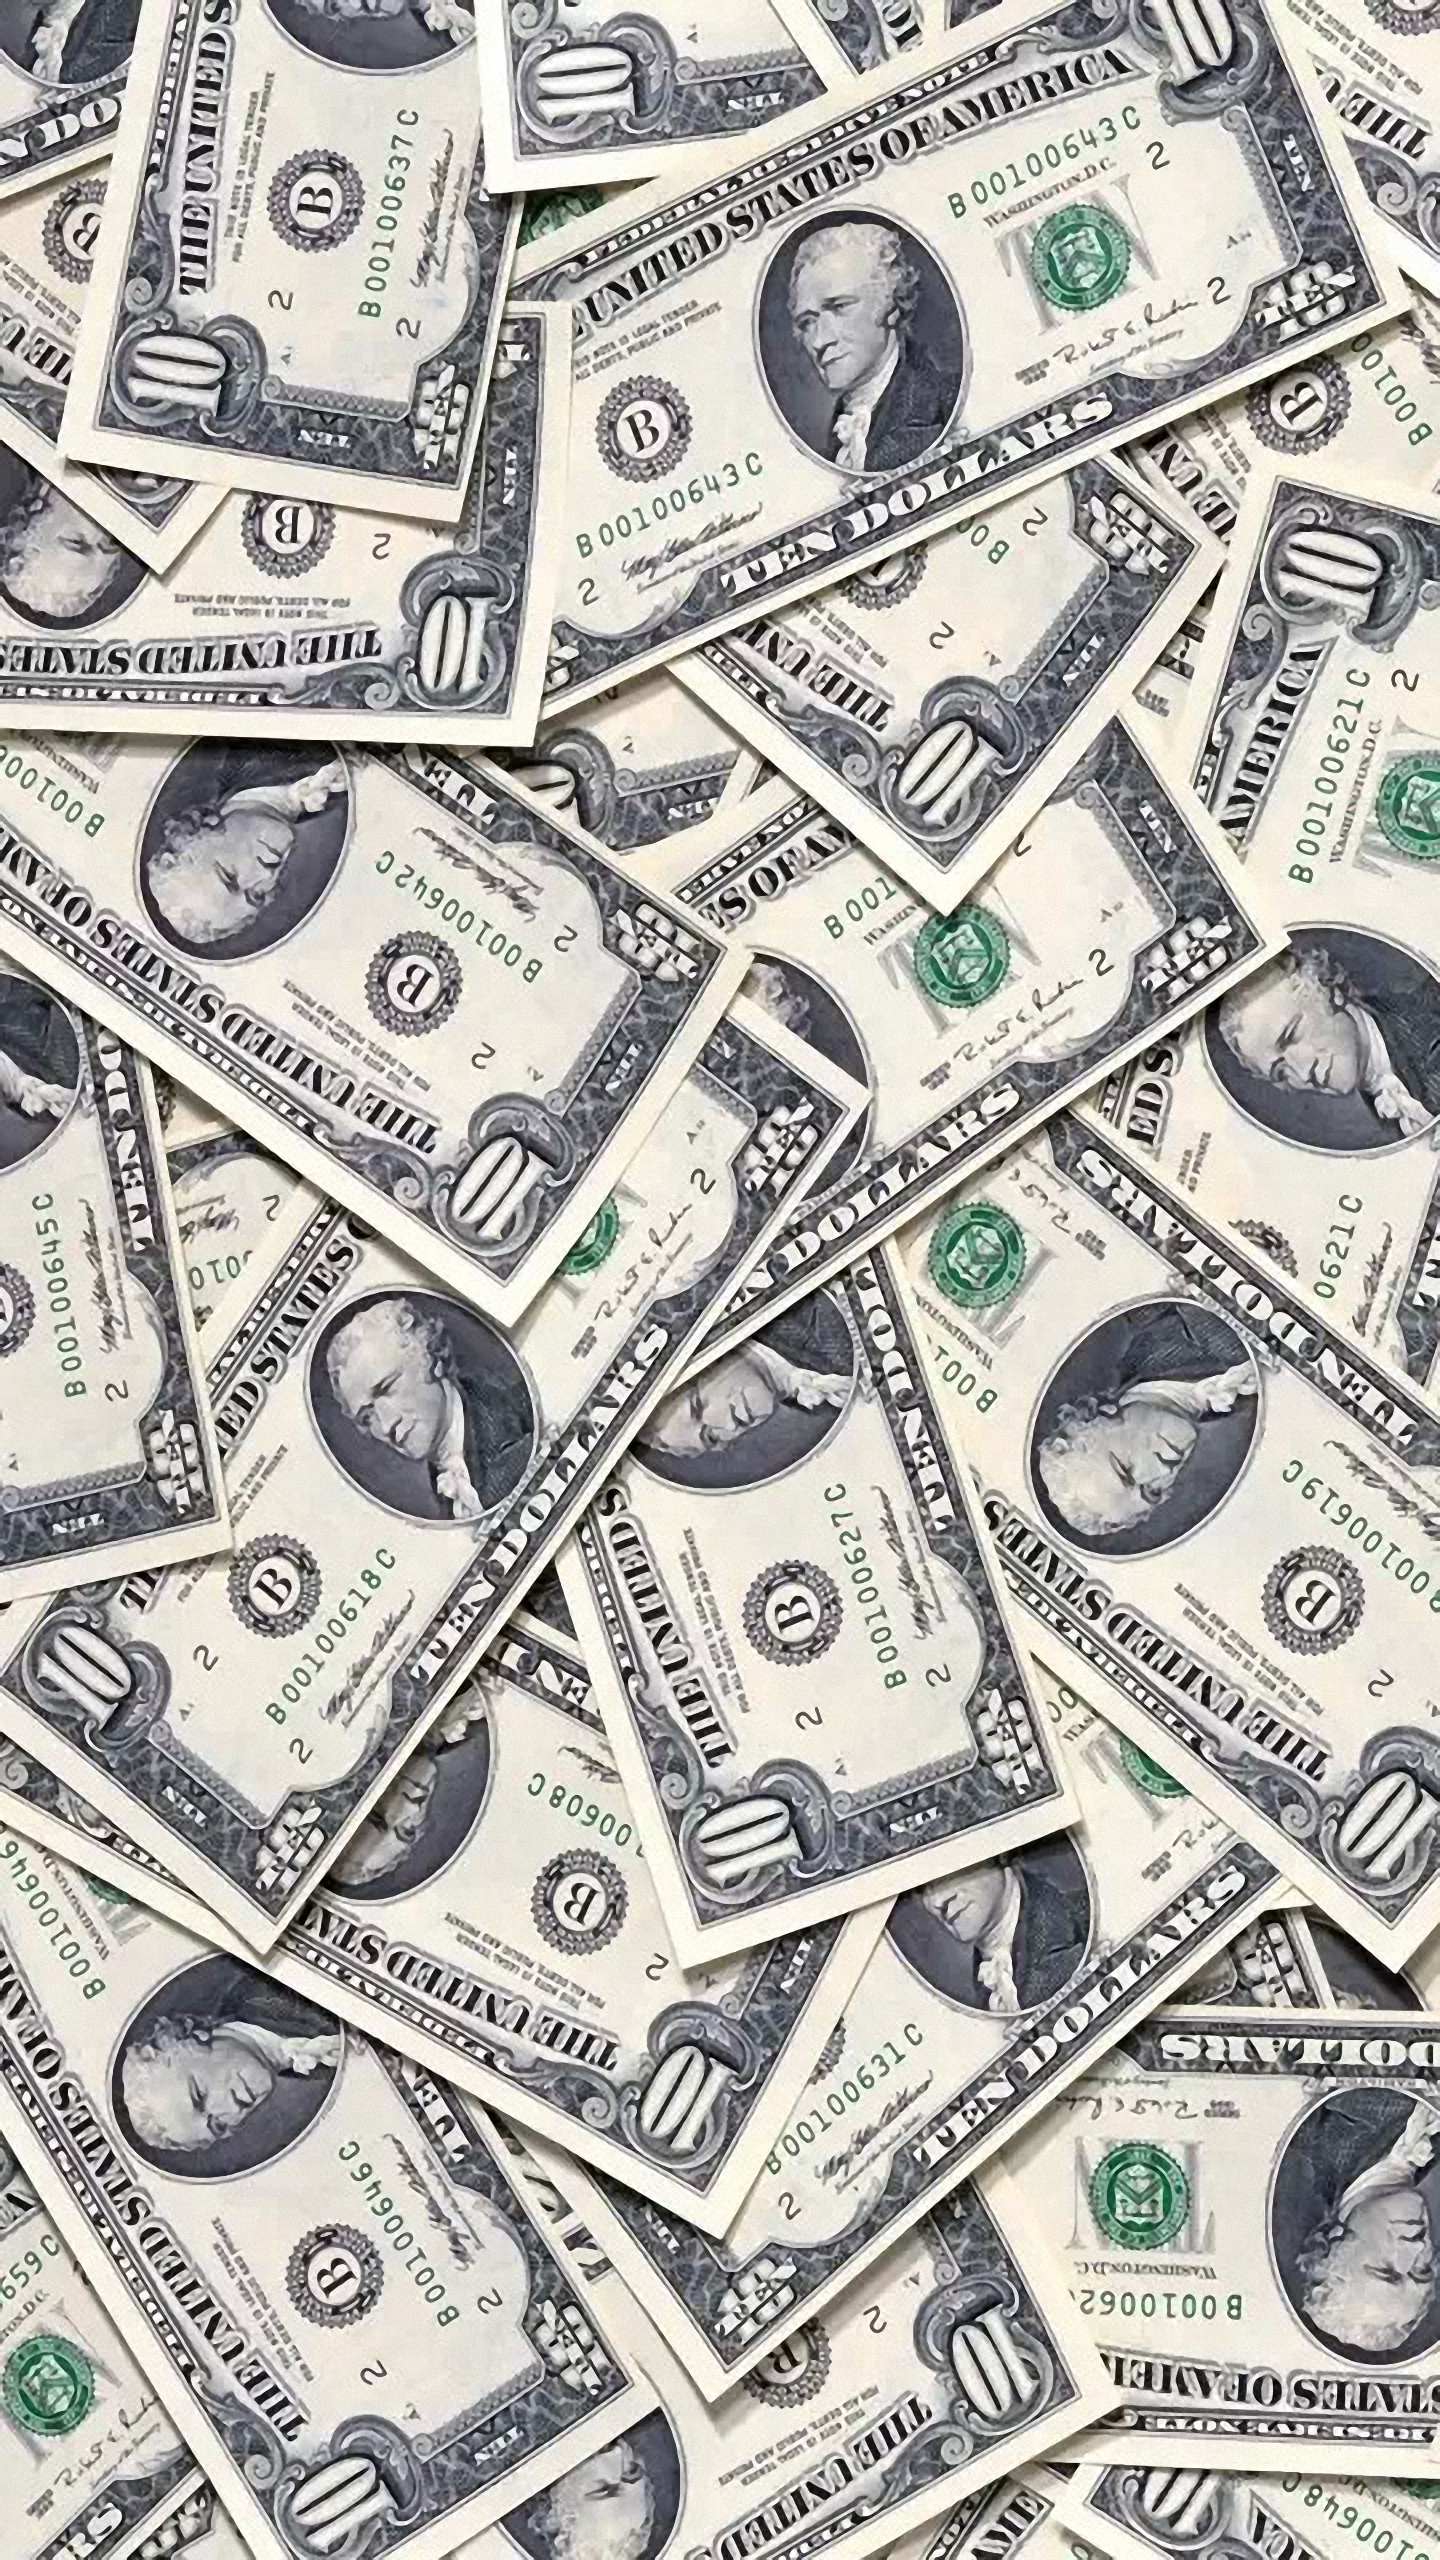 Money samsung galaxy s6 Wallpapers HD 1440x2560 1440x2560